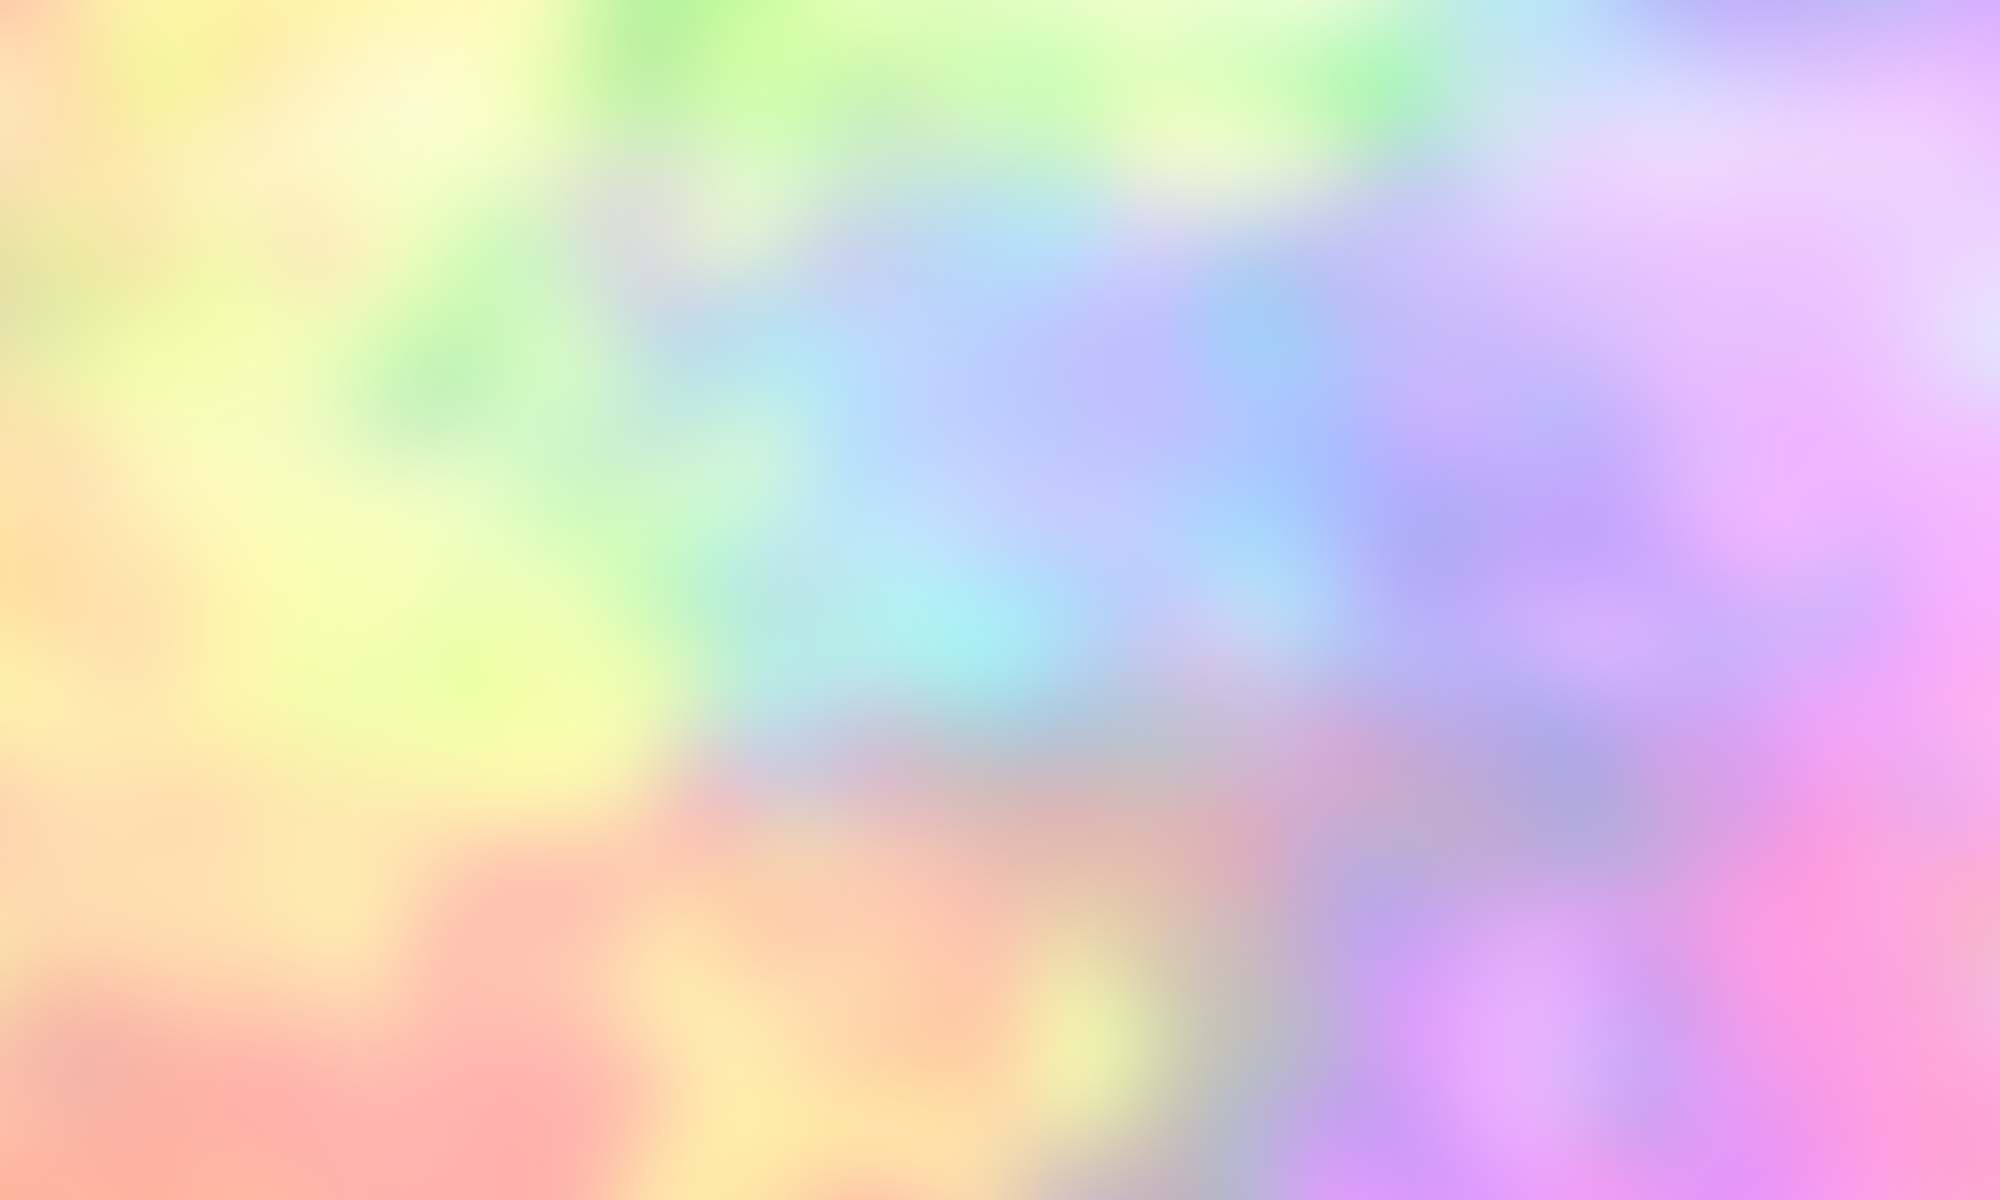 Rainbow Colored Paint Backgrounds